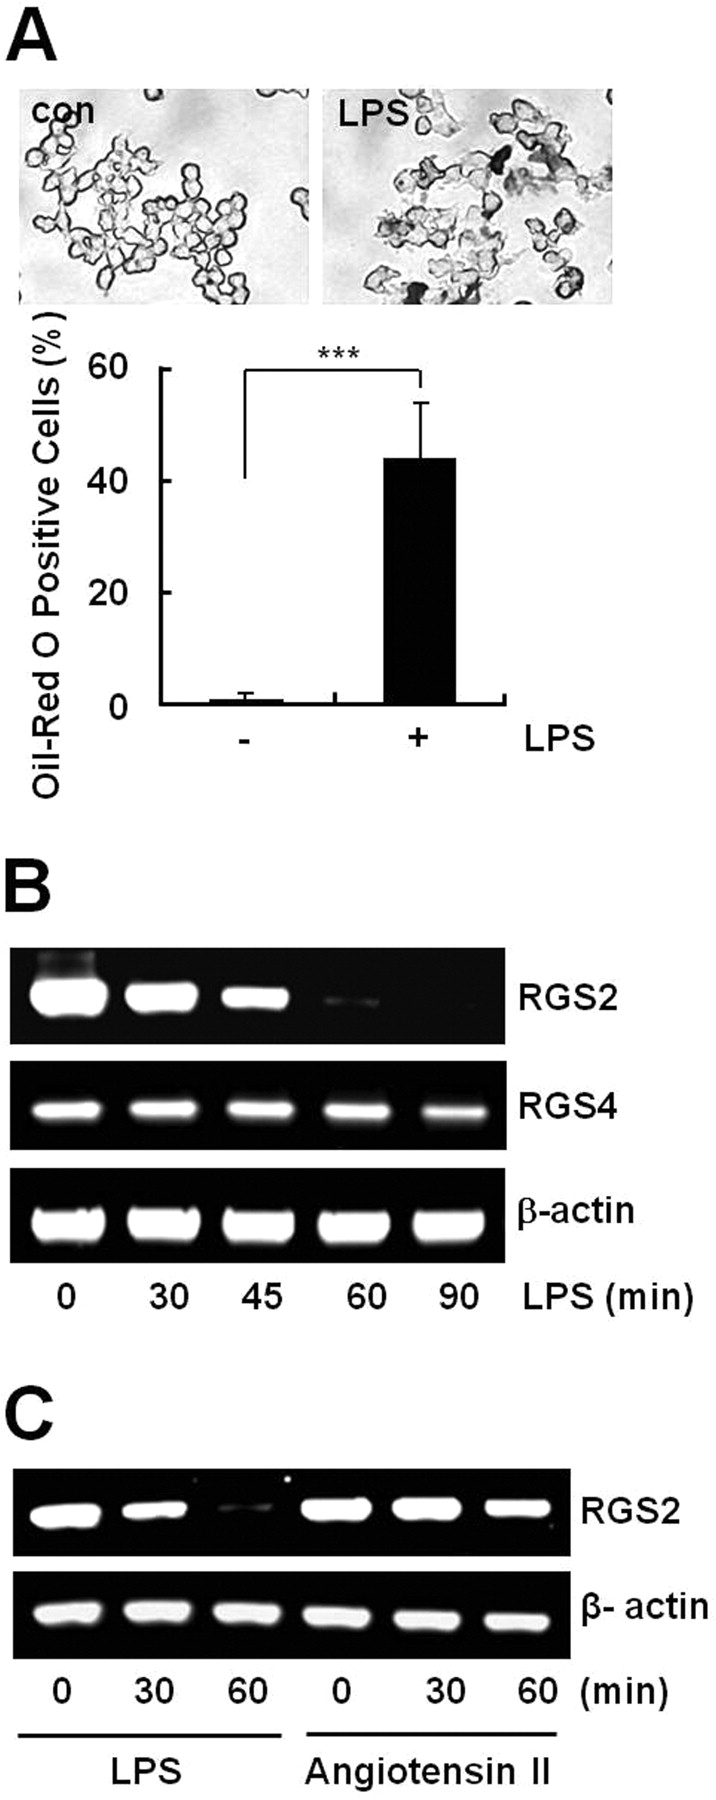 Protein kinase c and phospholipase d2 pathway regulates foam download figure ccuart Image collections